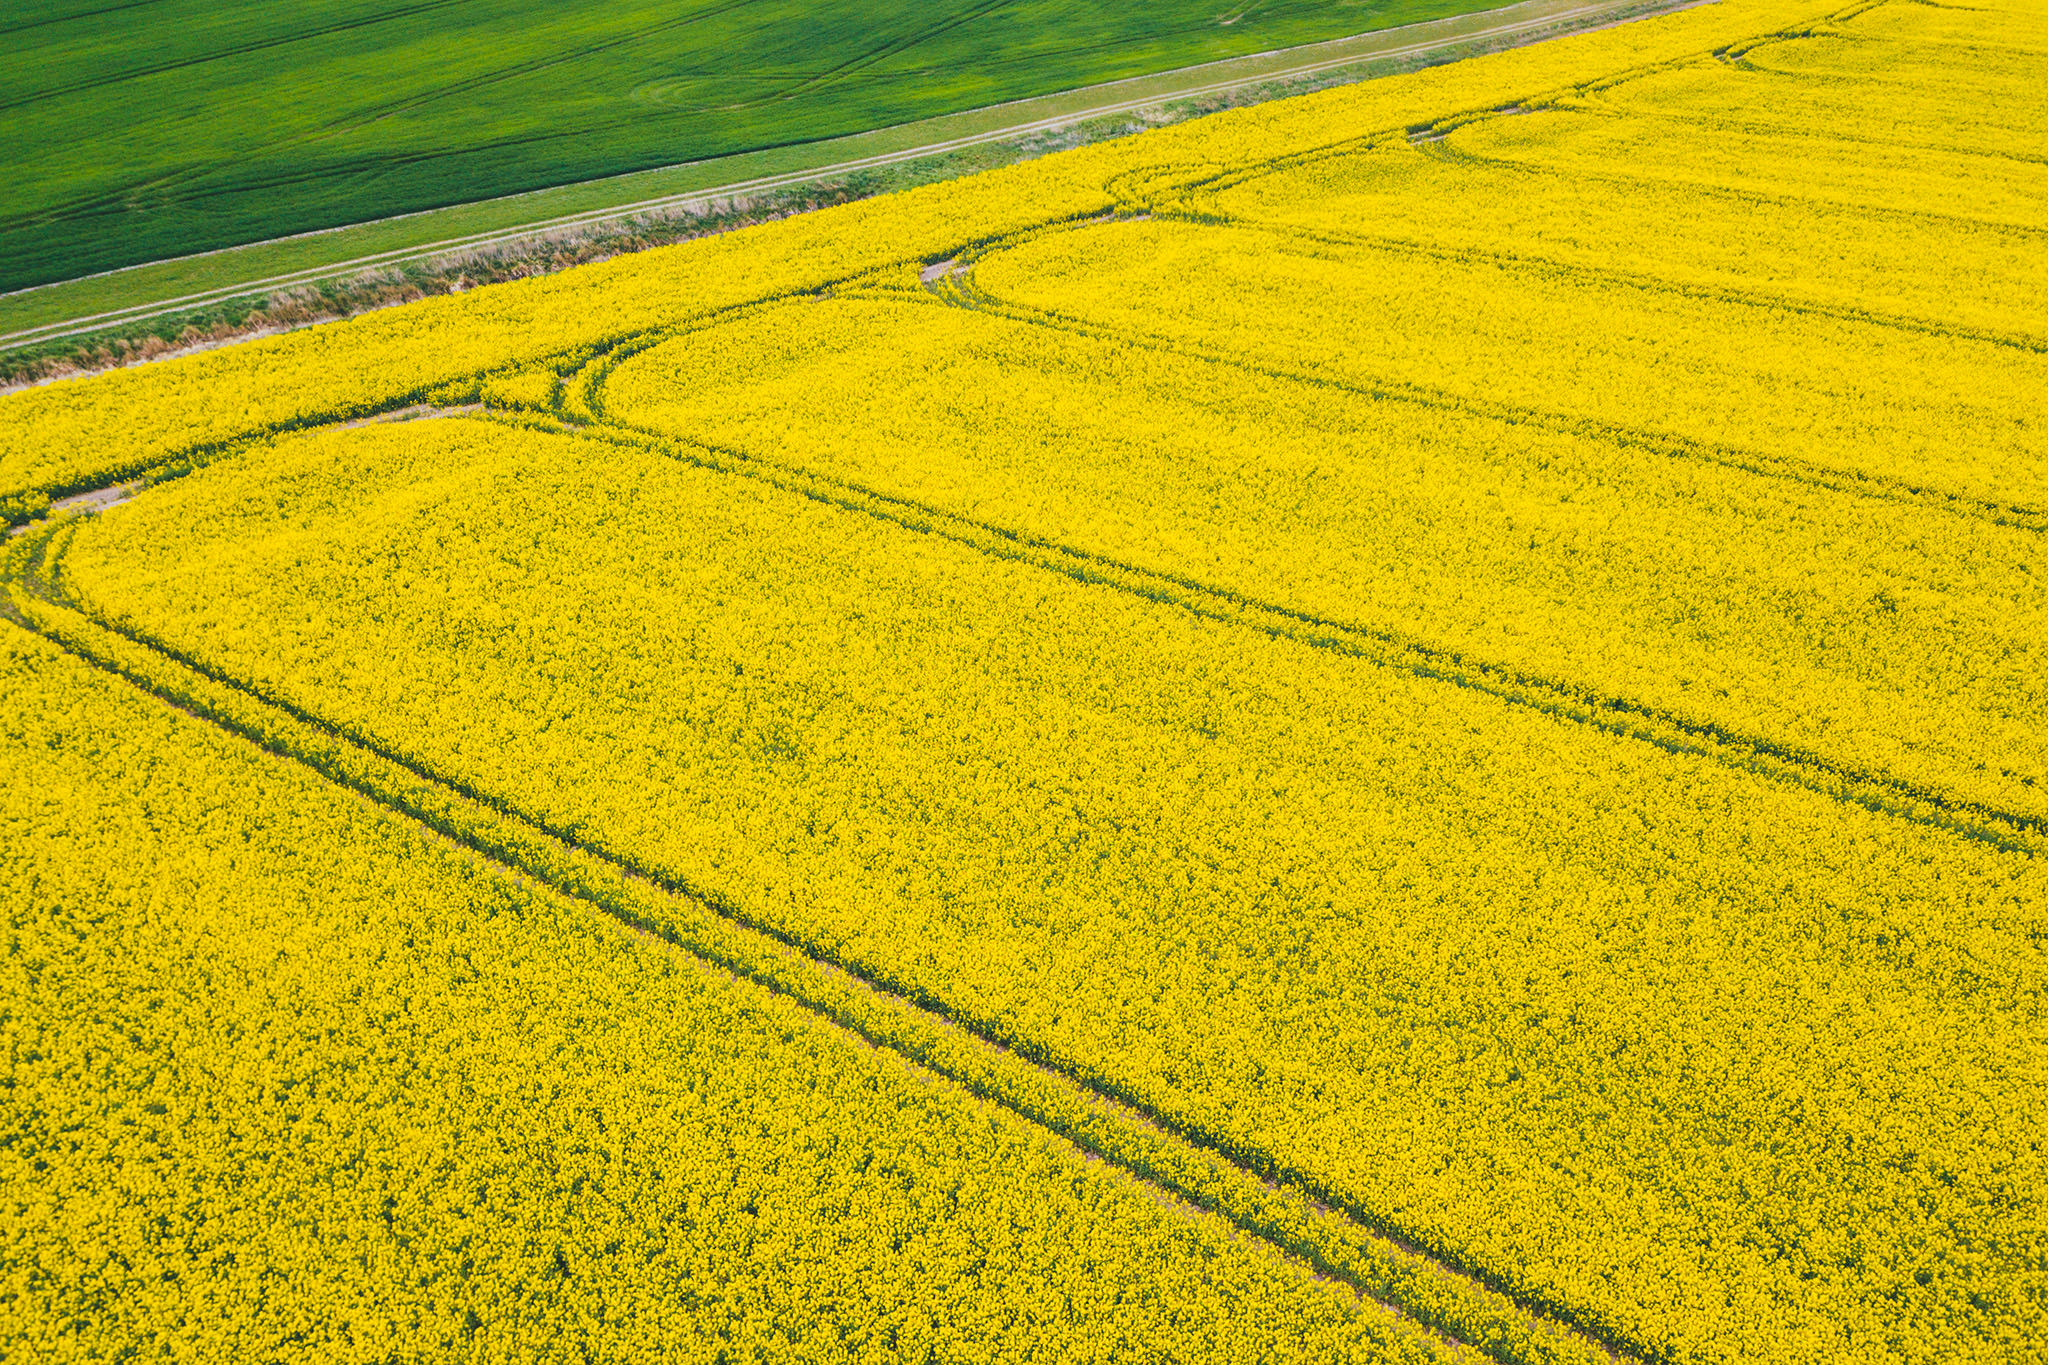 Tire track pattern in canola field